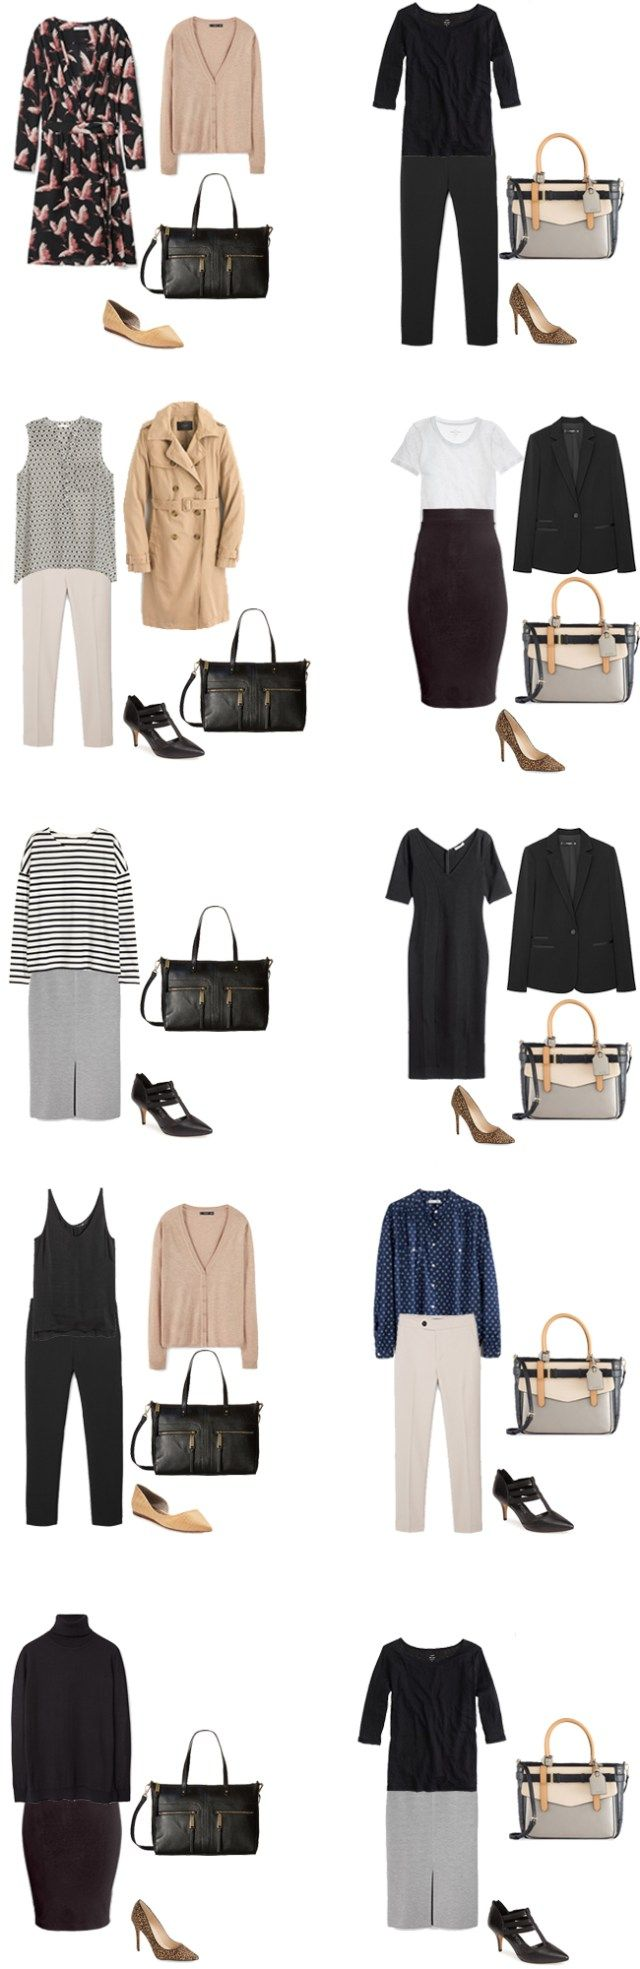 Basic Work Capsule Outfits 21-30 #capsulewardrobe #workwardrobe #workwear…